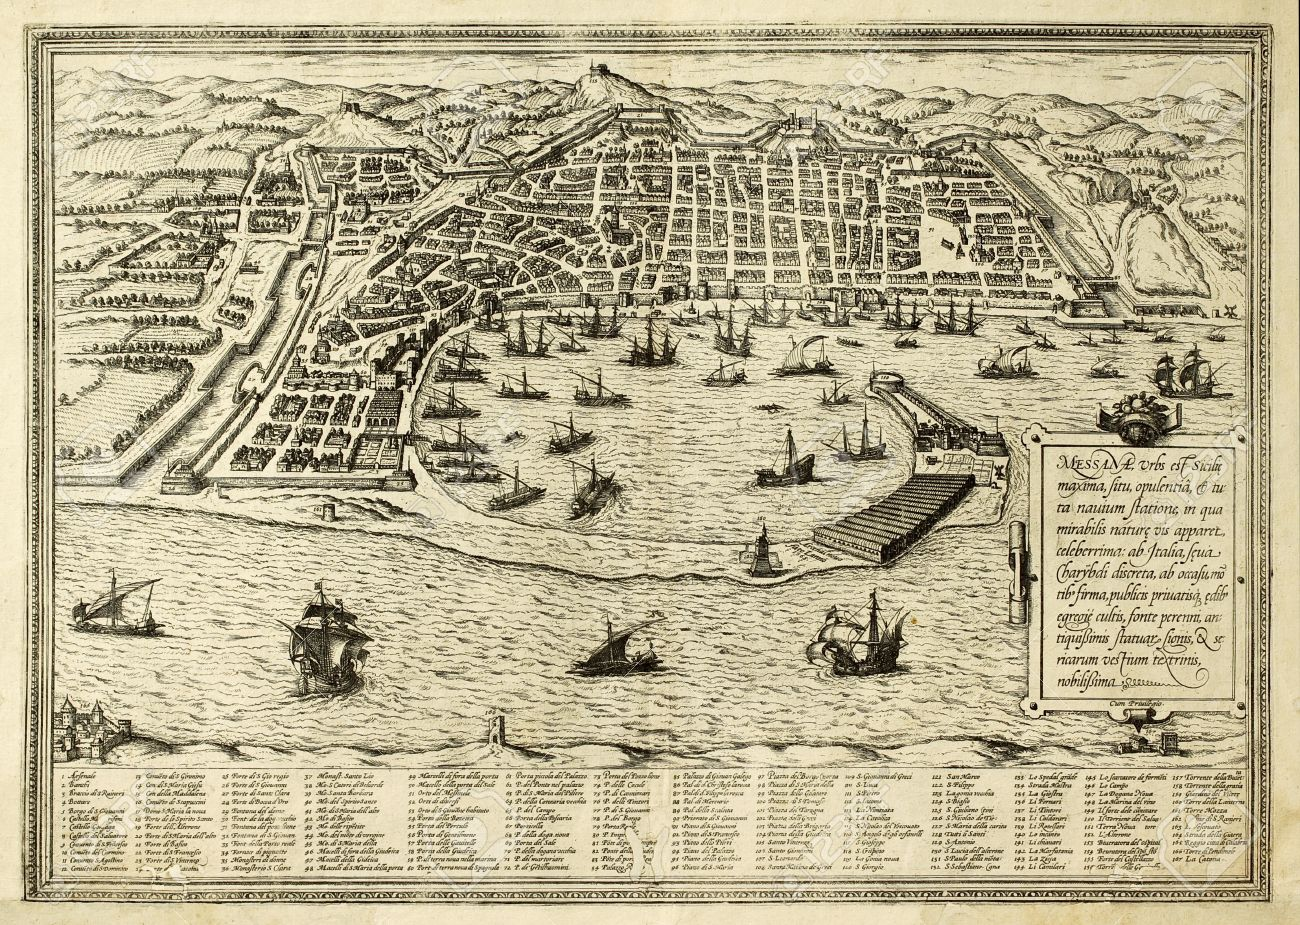 Messina 17th century-map-of-the-town-of-Sicily-separated-from-Italy-by-the-strait-of-the-same-name